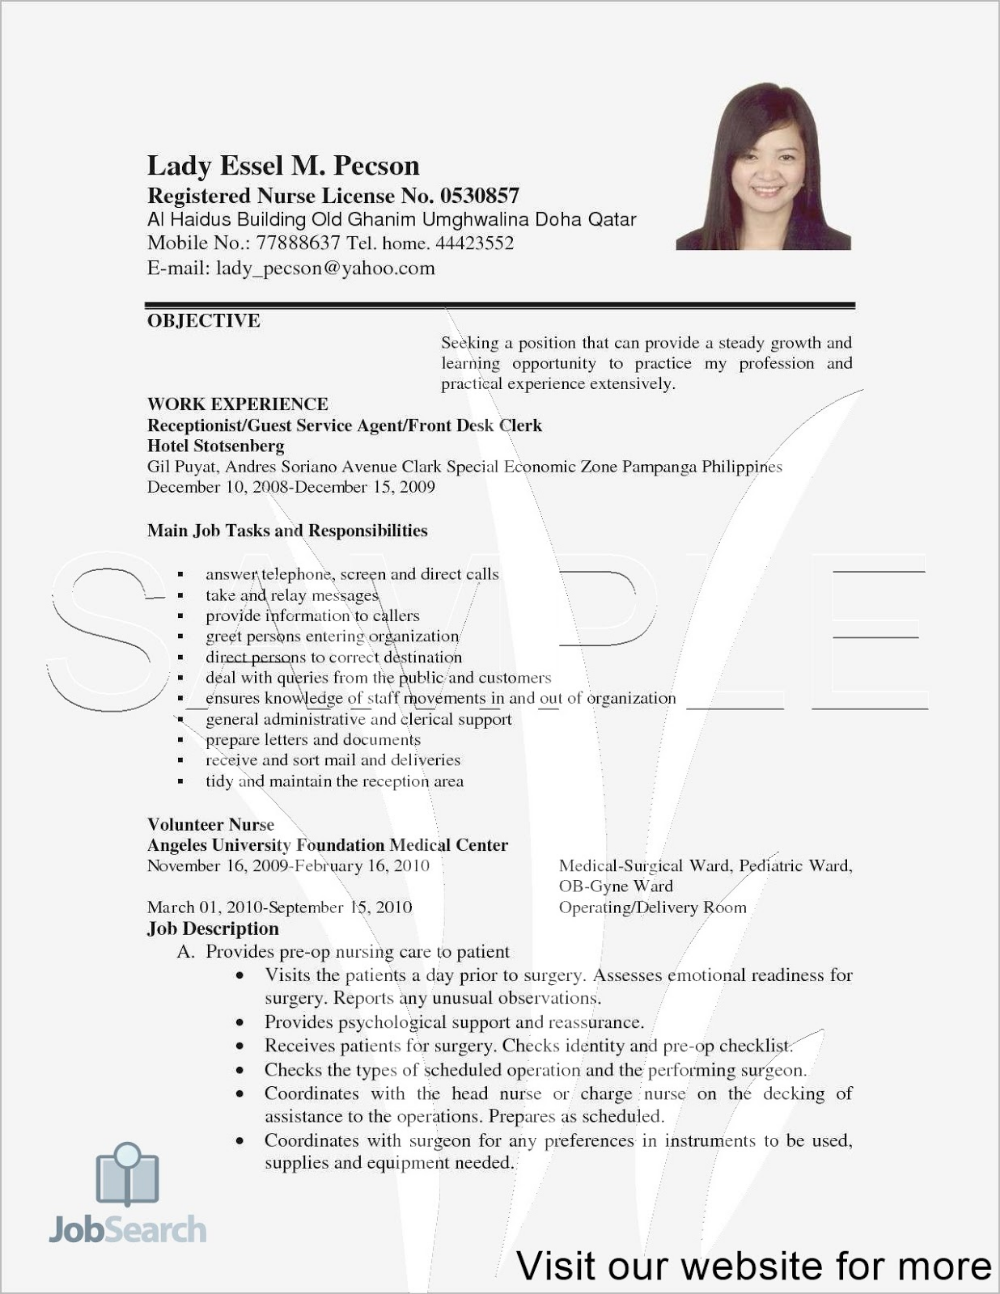 Resumes For High School Students 2020 Resume For Students In 2020